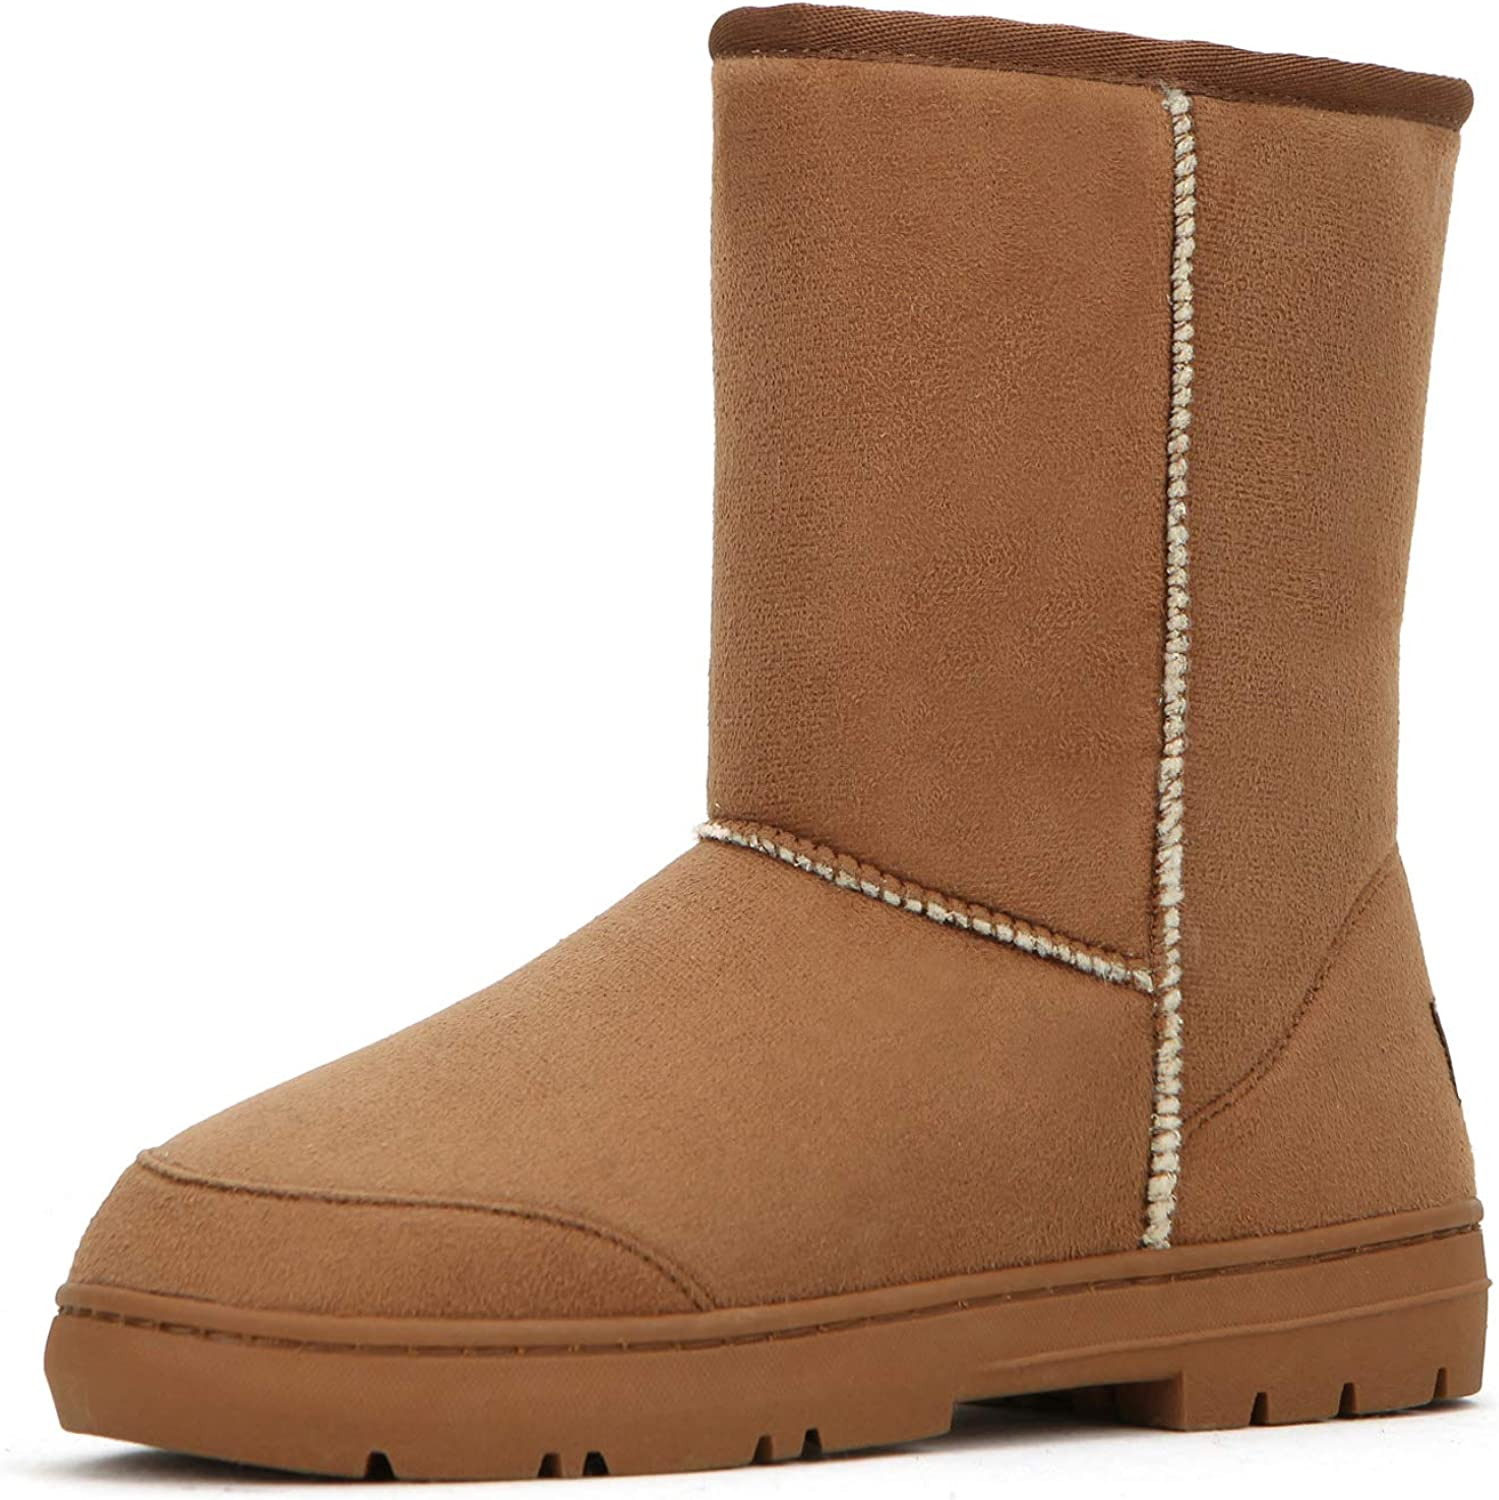 CLPP'LI Inventory cleanup selling sale Women's Now on sale Emma Snow Boots Winter